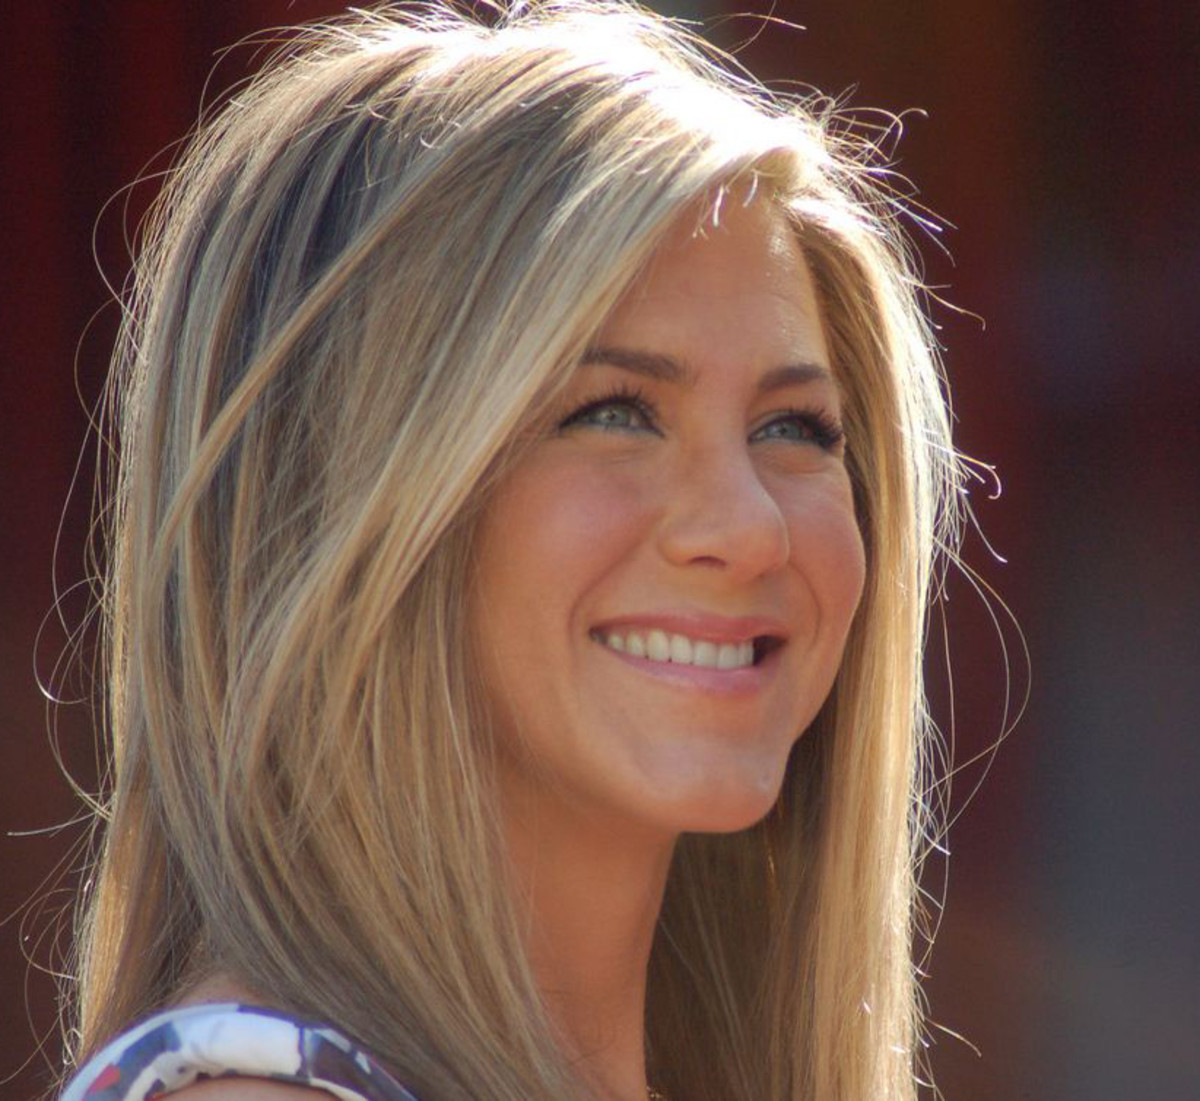 Jennifer Aniston's New Favorite Workout is a 'Spiritual' HIIT Class